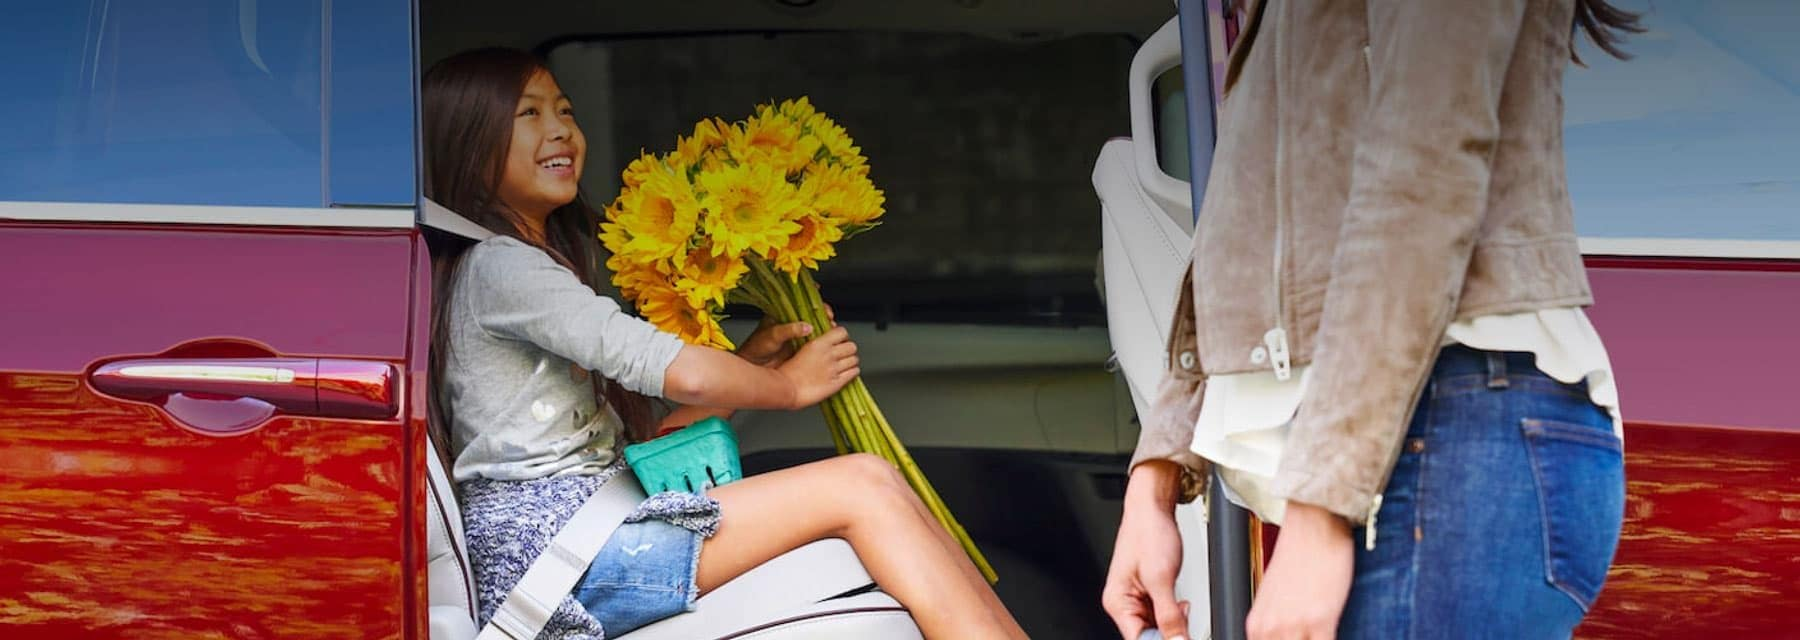 Young girl holding a bundle of yellow sun flowers in her hands while sitting in the back of a red Chrysler Pacifica